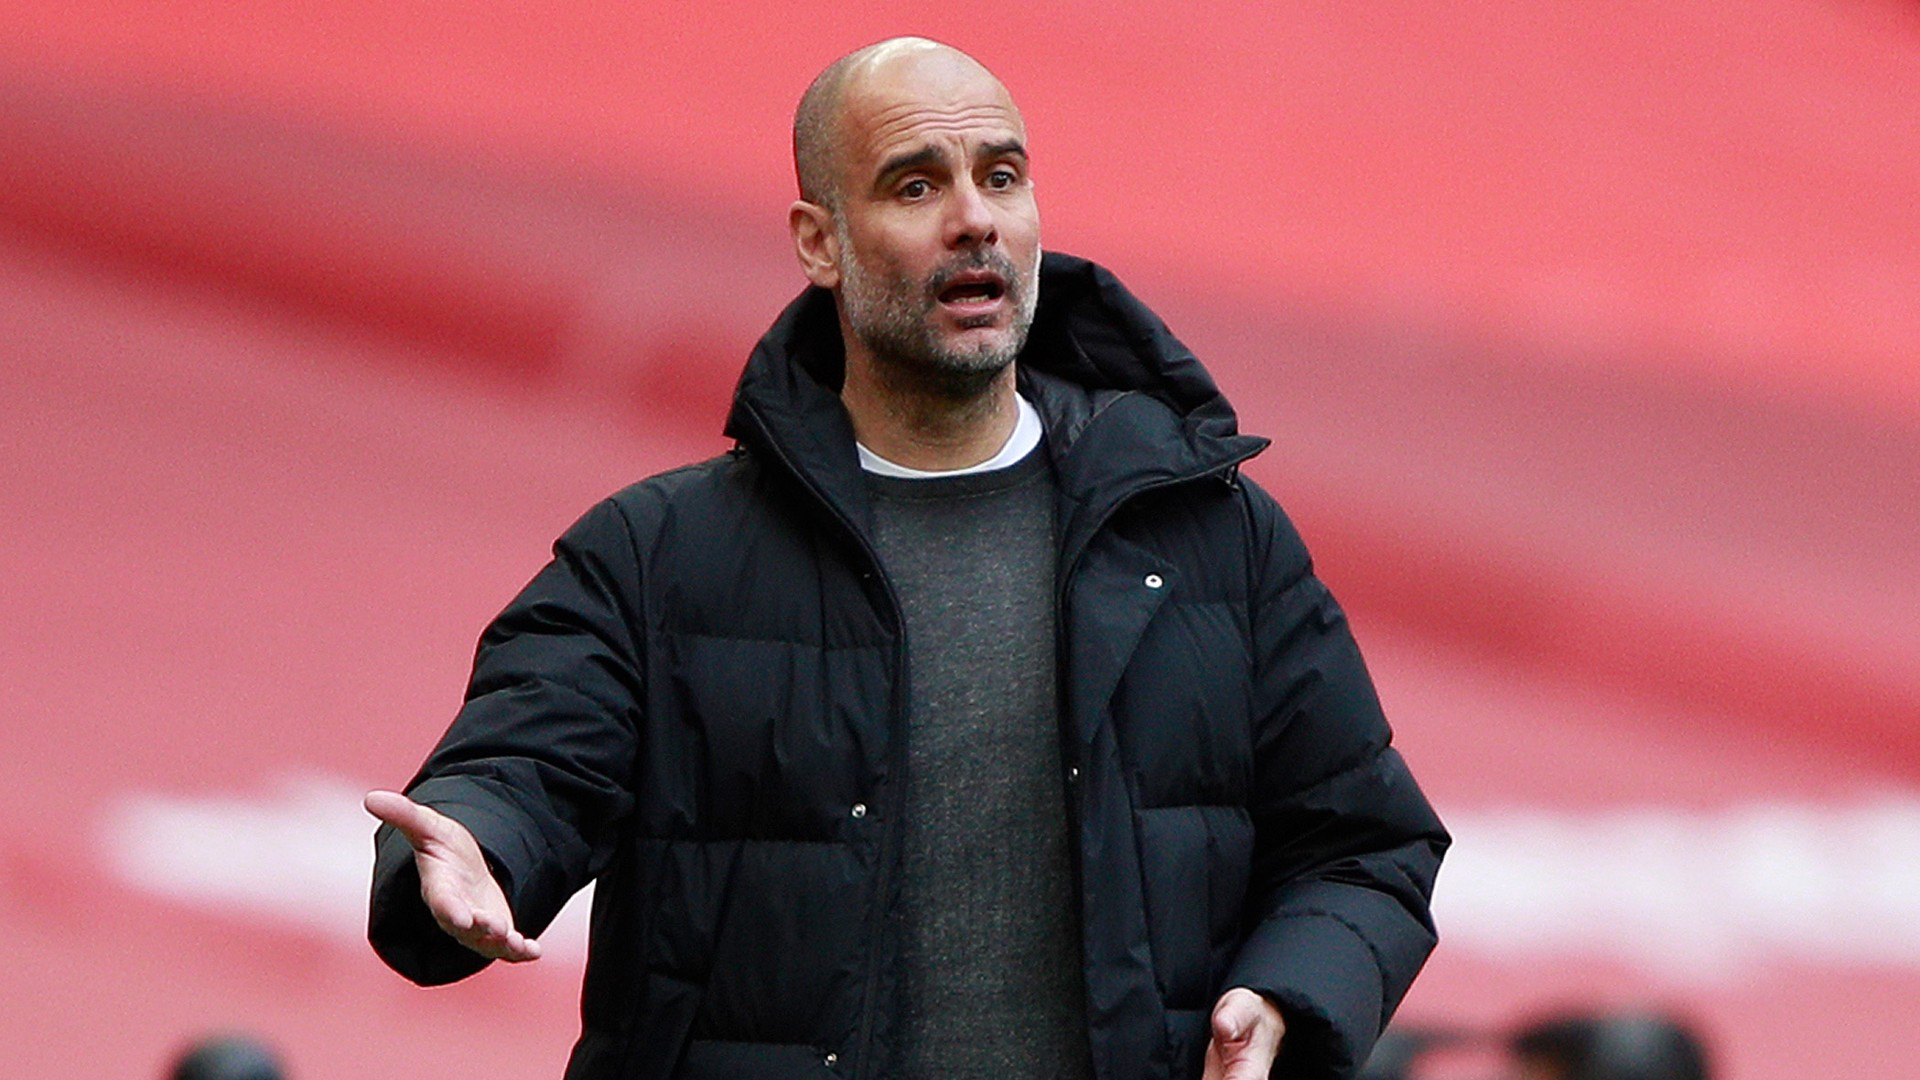 'Don't say we didn't pay attention' – Pep dismisses carelessness suggestions after Man City crash out of FA Cup | Goal.com